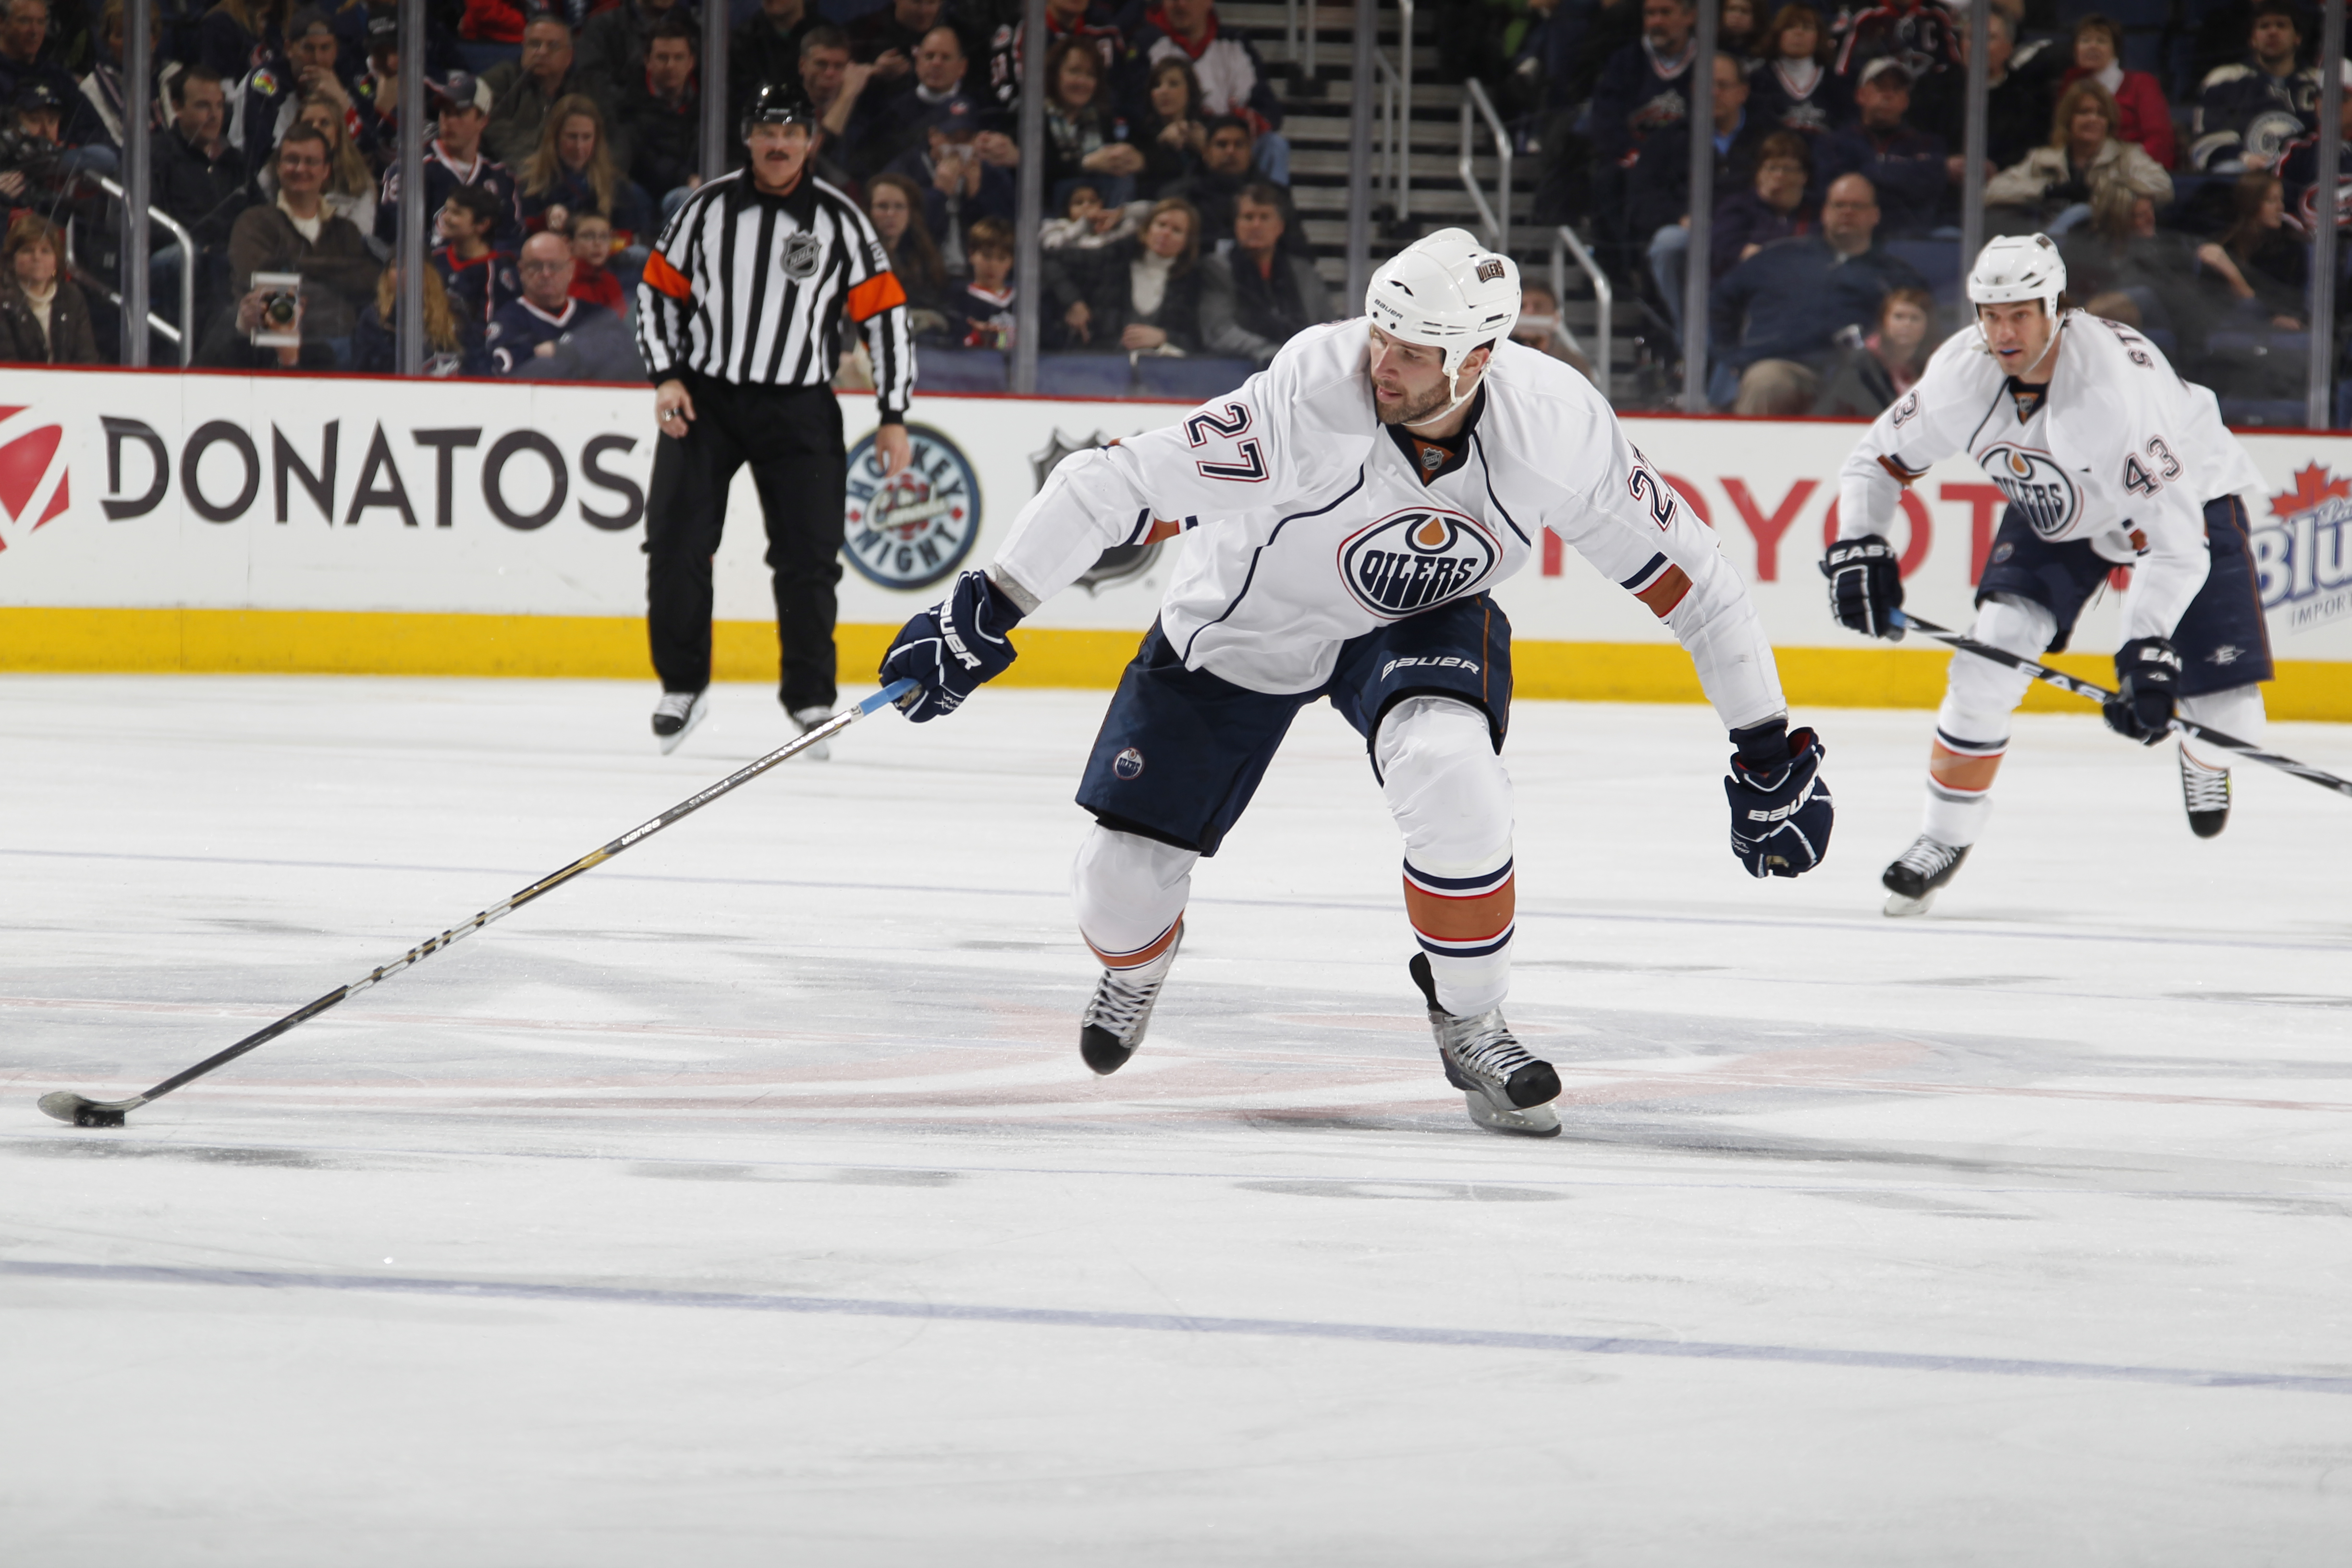 COLUMBUS, OH - FEBRUARY 05: Dustin Penner #27 of the Edmonton Oilers skates with the puck against the Columbus Blue Jackets at Nationwide Arena on February 5, 2011 in Columbus, Ohio.  (Photo by Gregory Shamus/Getty Images)